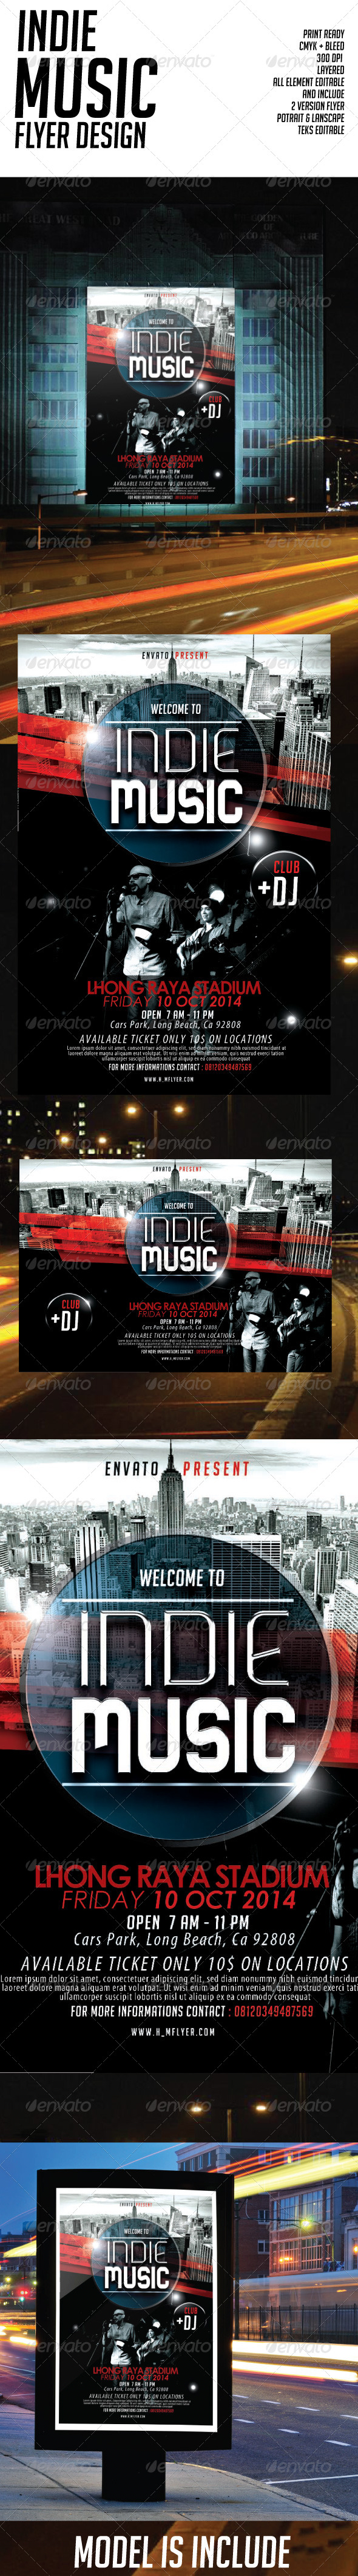 Futuristic Indie Music Portrait & Landscape  - Events Flyers